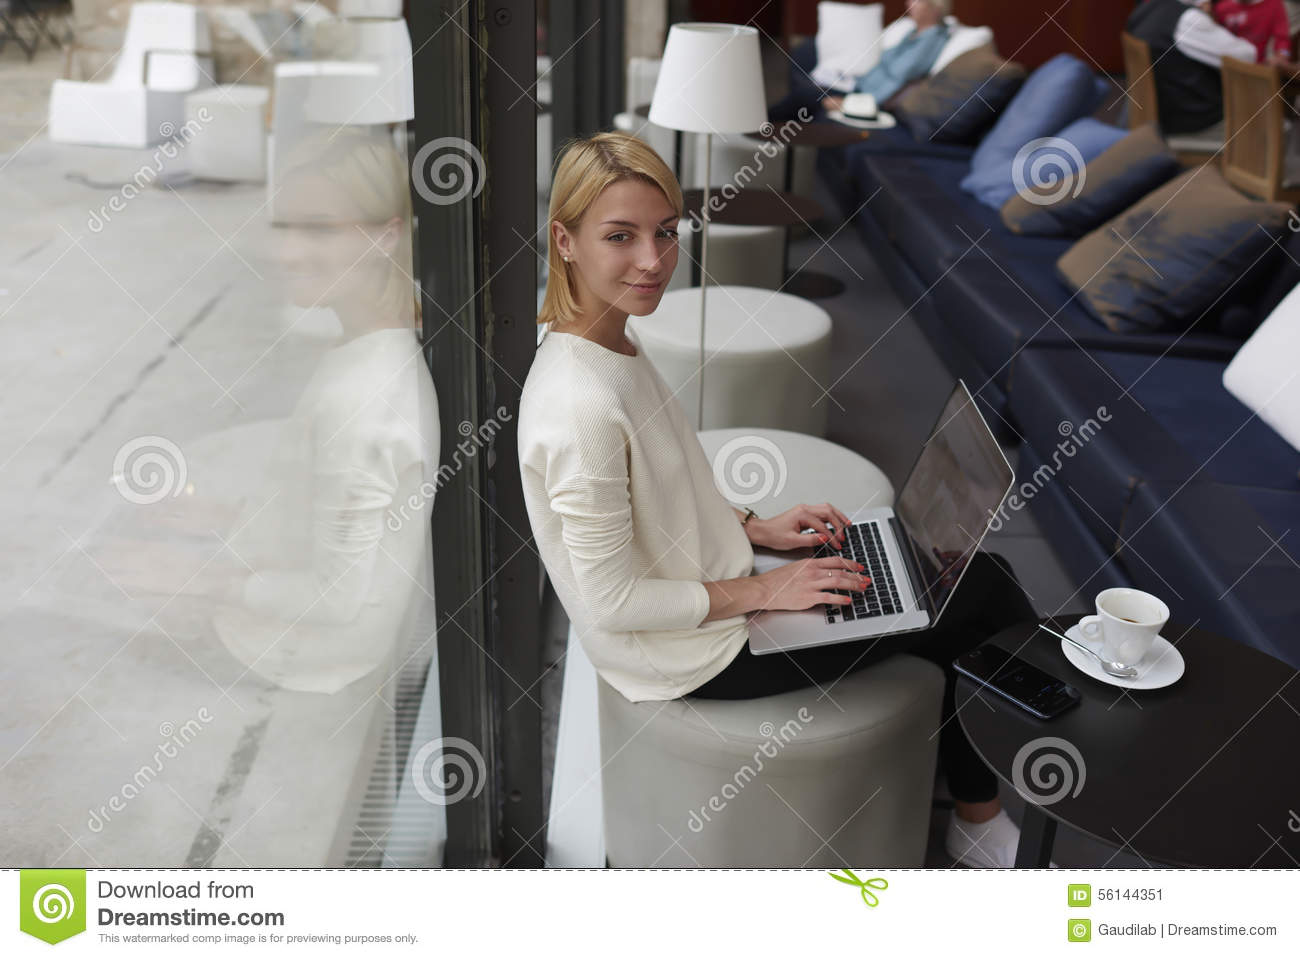 Gorgeous young woman sitting with open laptop computer in modern coffee shop or hotel interior